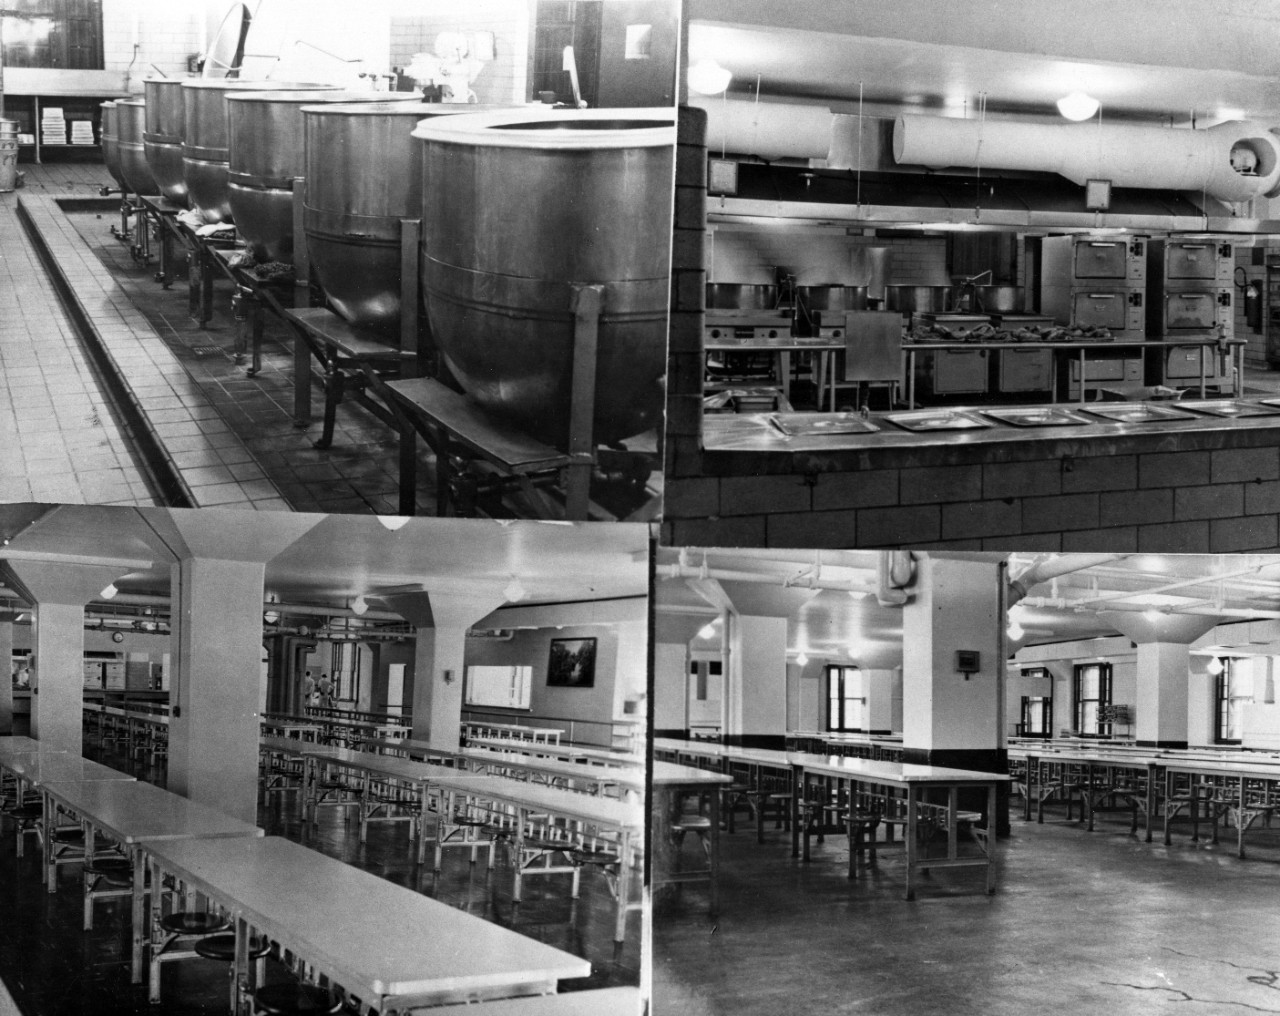 Mess Hall, Cooking Pots, Steam Line